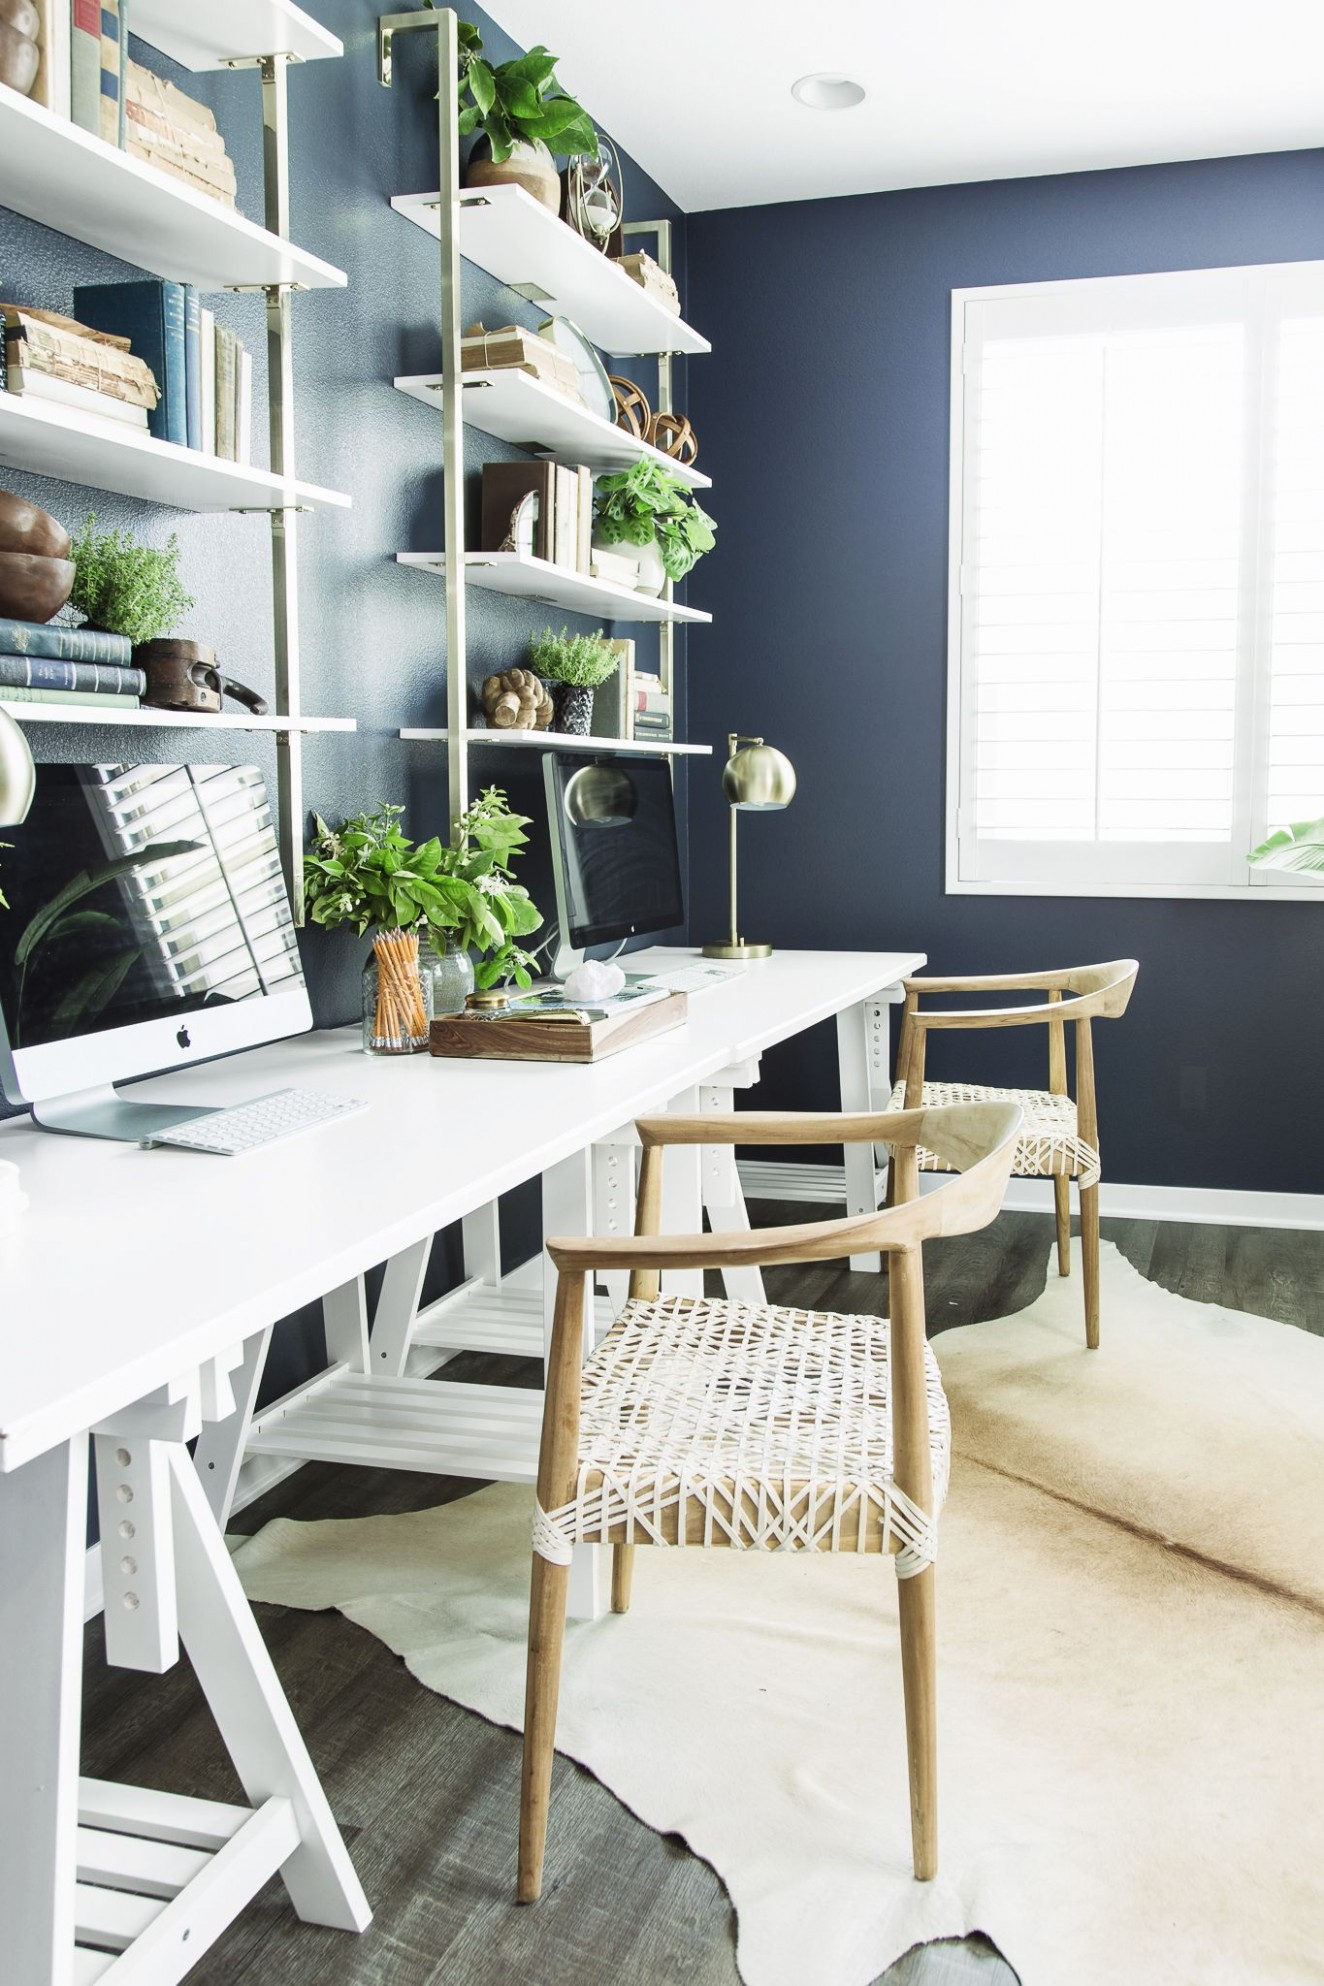 8 Best Home Office Ideas - How to Decorate a Home Office - Home Office Location Ideas